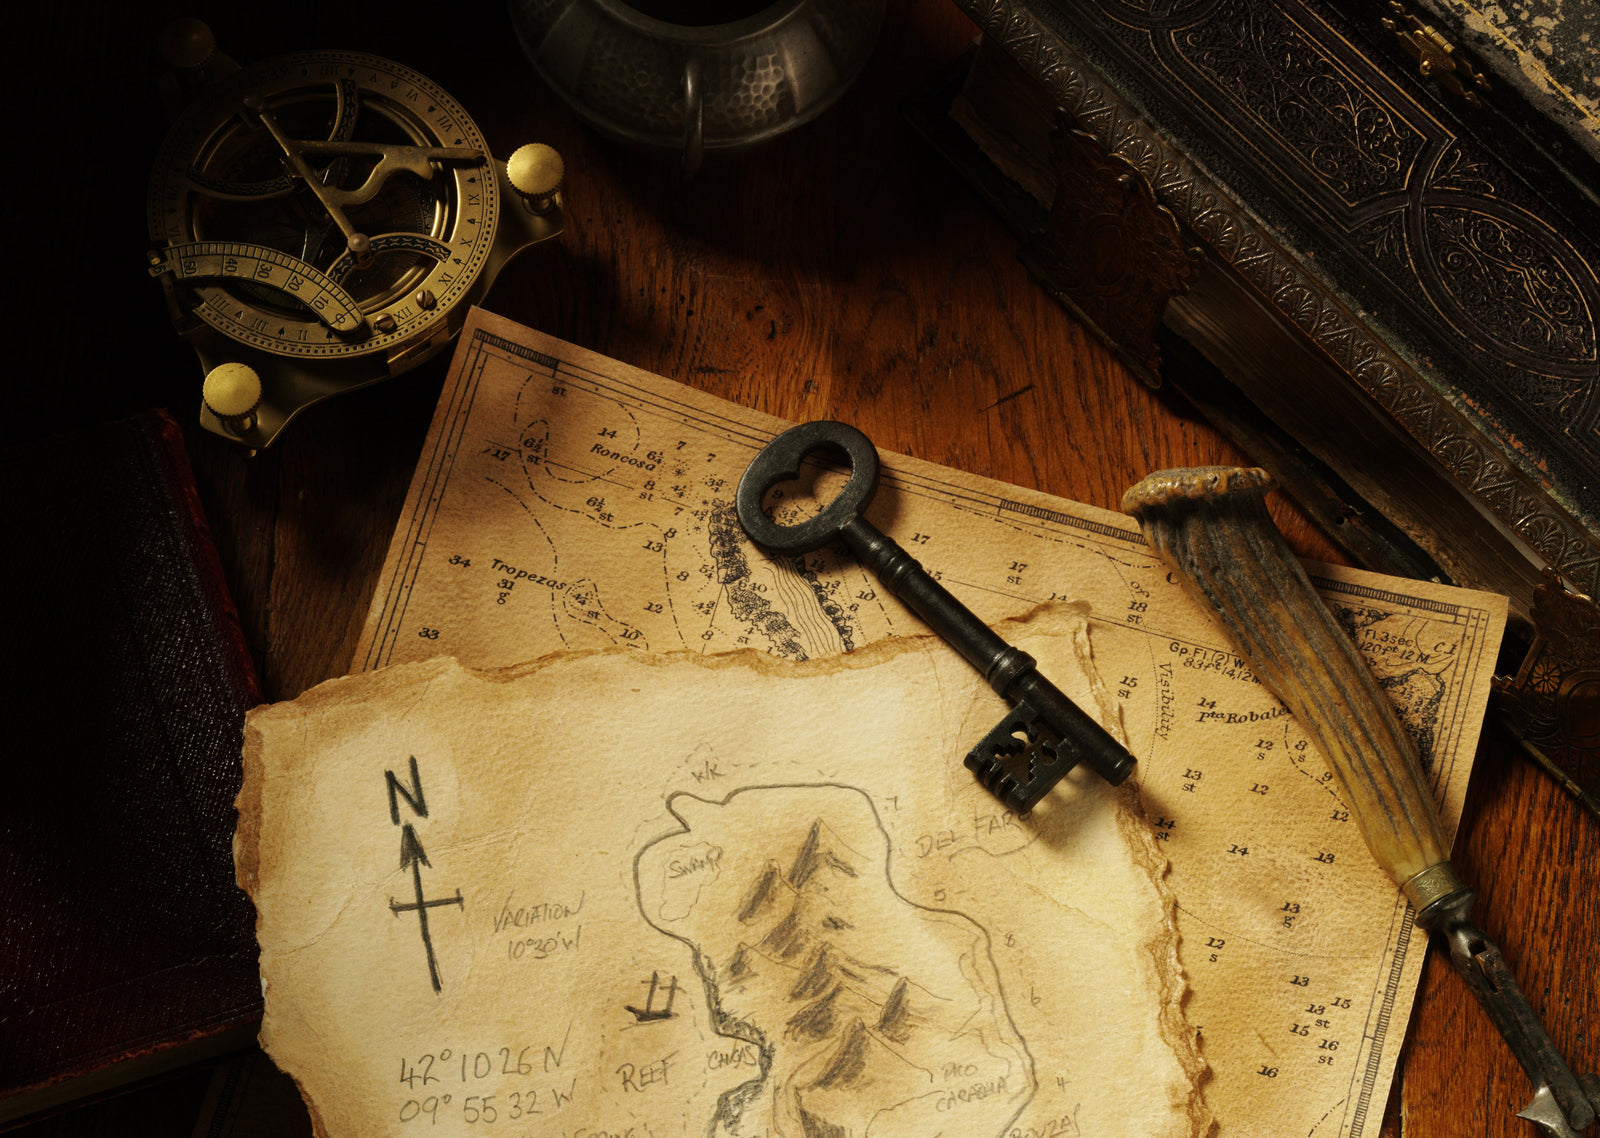 Welcome to 21 Keys Escape Rooms homepage! Image of great escape game items: key, leather book, treasure maps, ornate jewelry box, compass and dial.